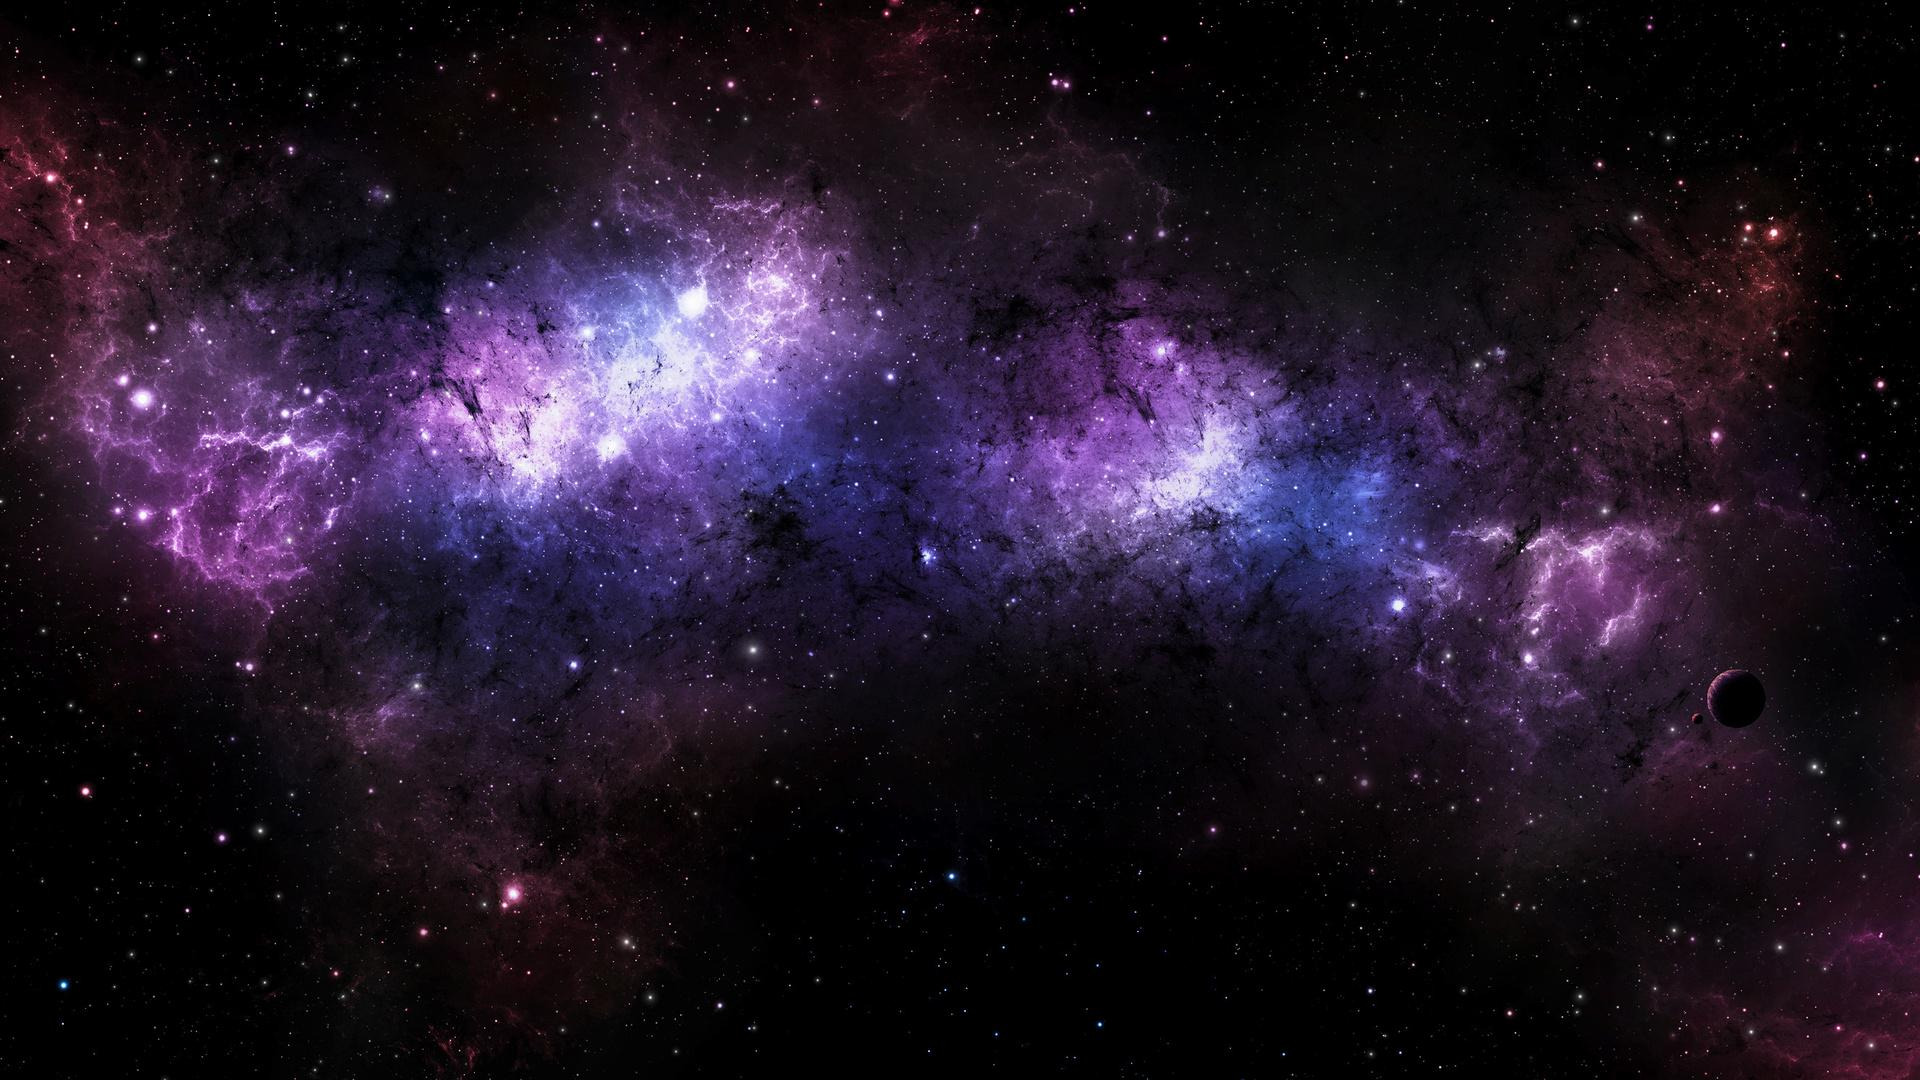 Galaxy Wallpaper Free Download